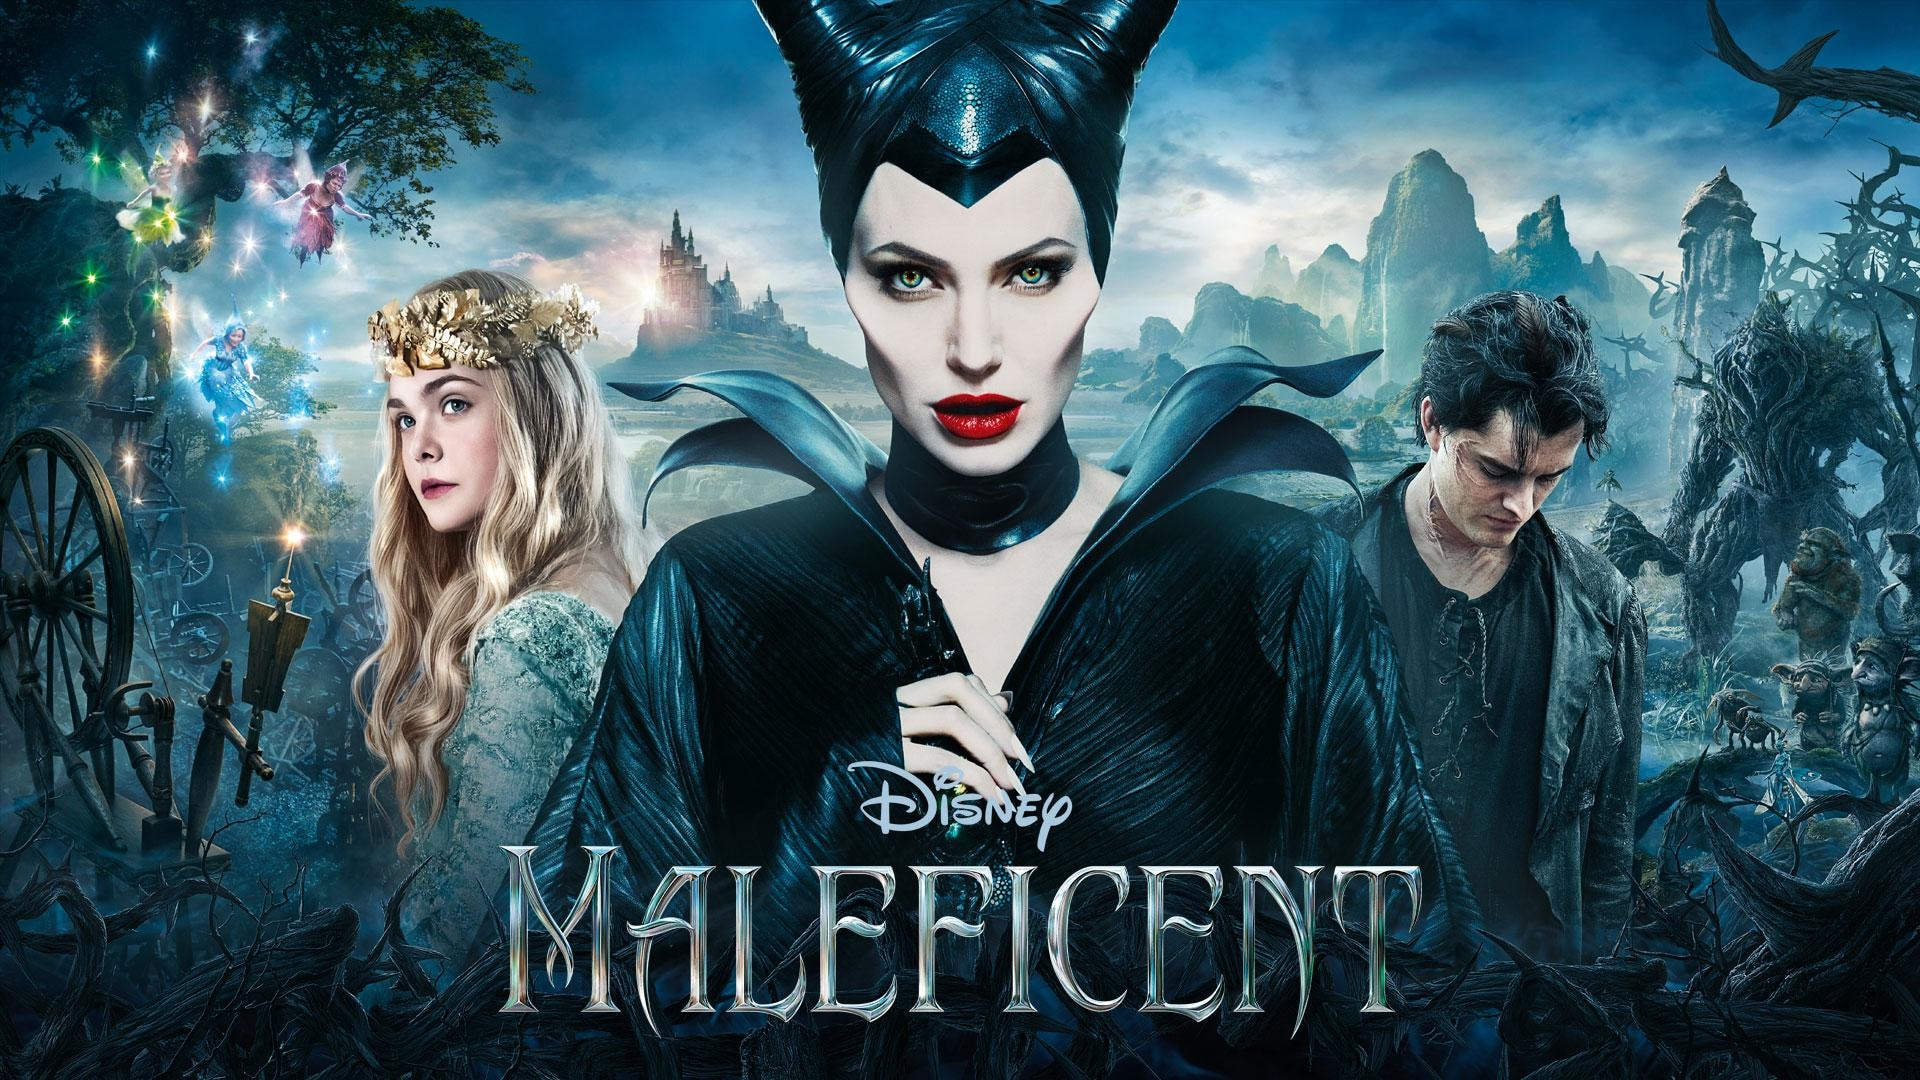 Maleficent Full Movie Watch Online Stream Or Download Chili